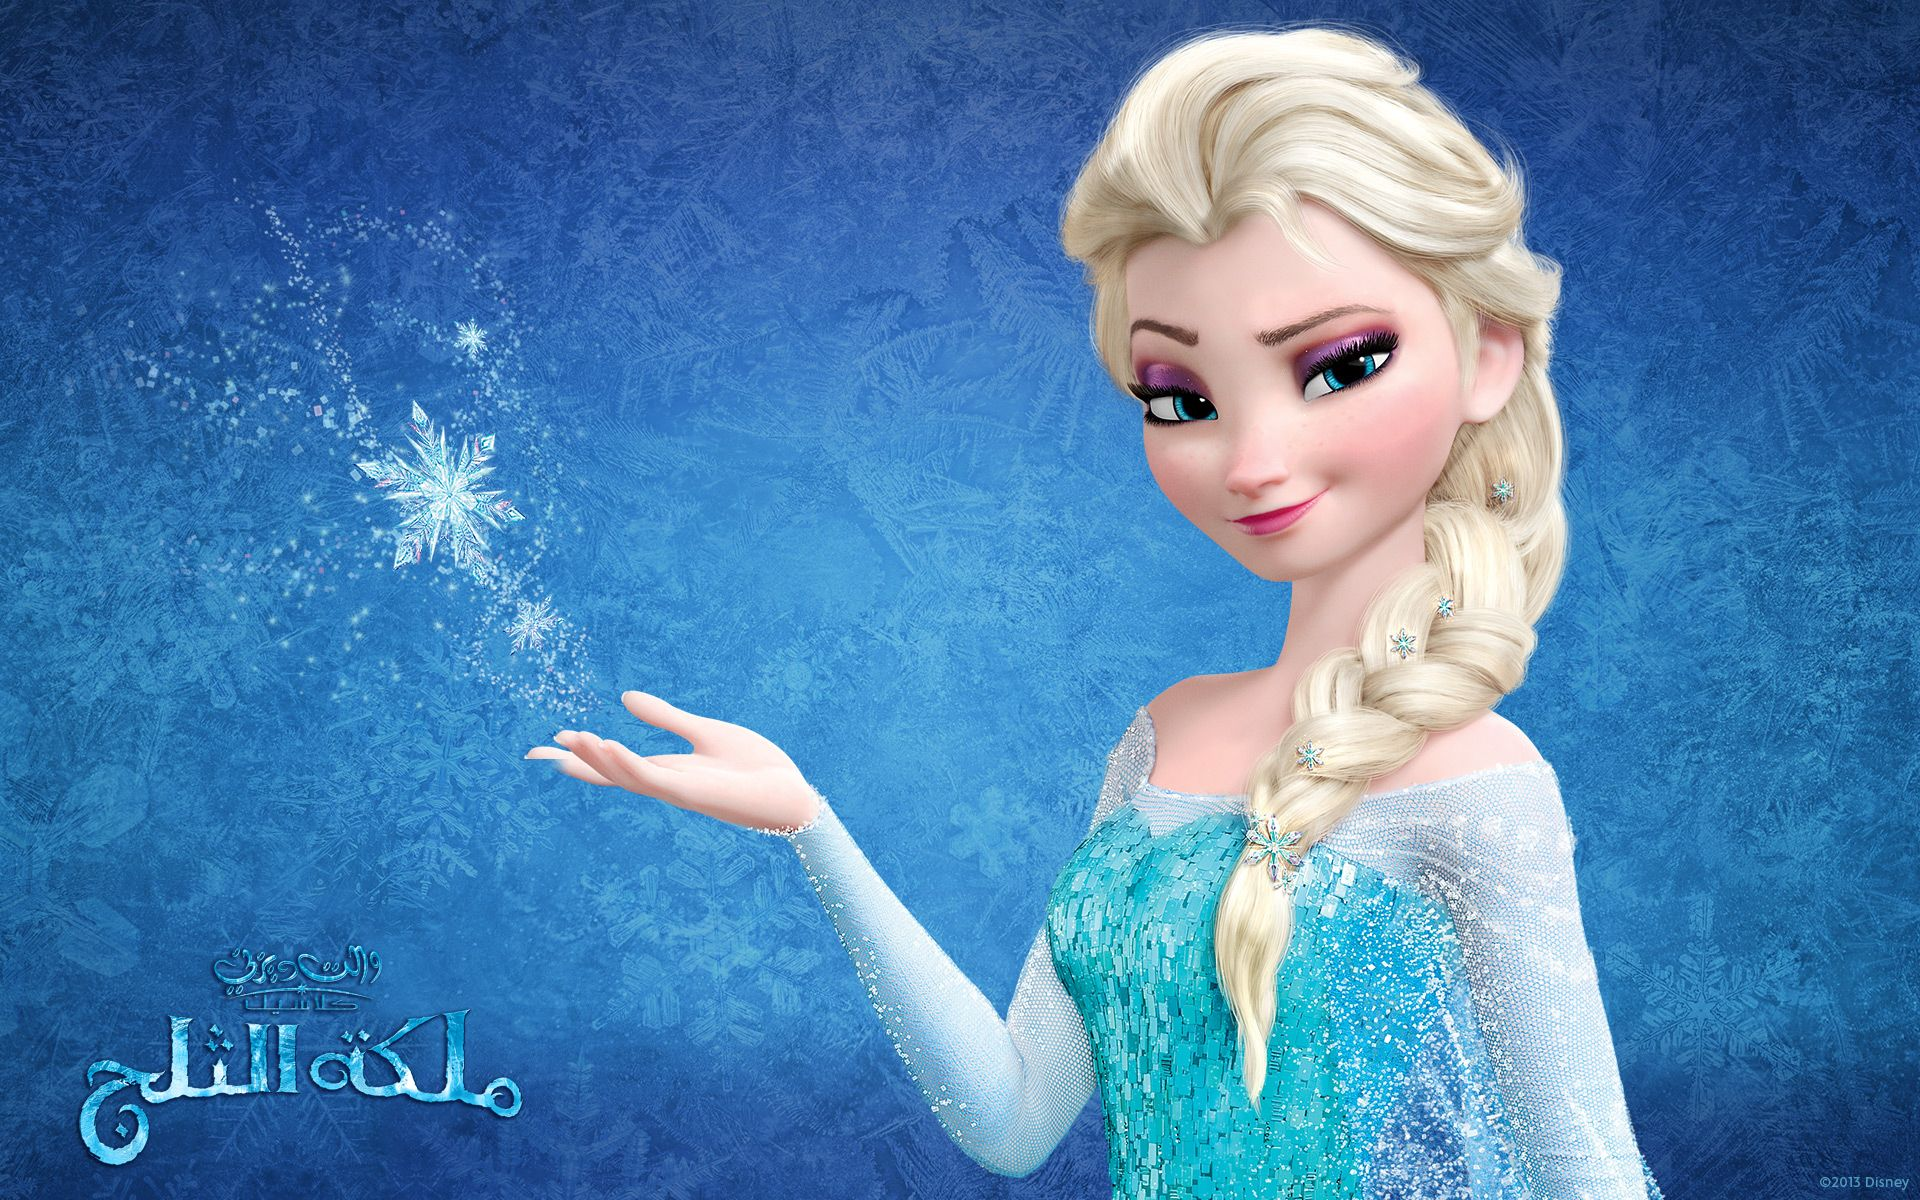 Frozen Wallpaper ملكة الثلج Frozen Disney Frozen Elsa Disney Elsa Frozen Movie